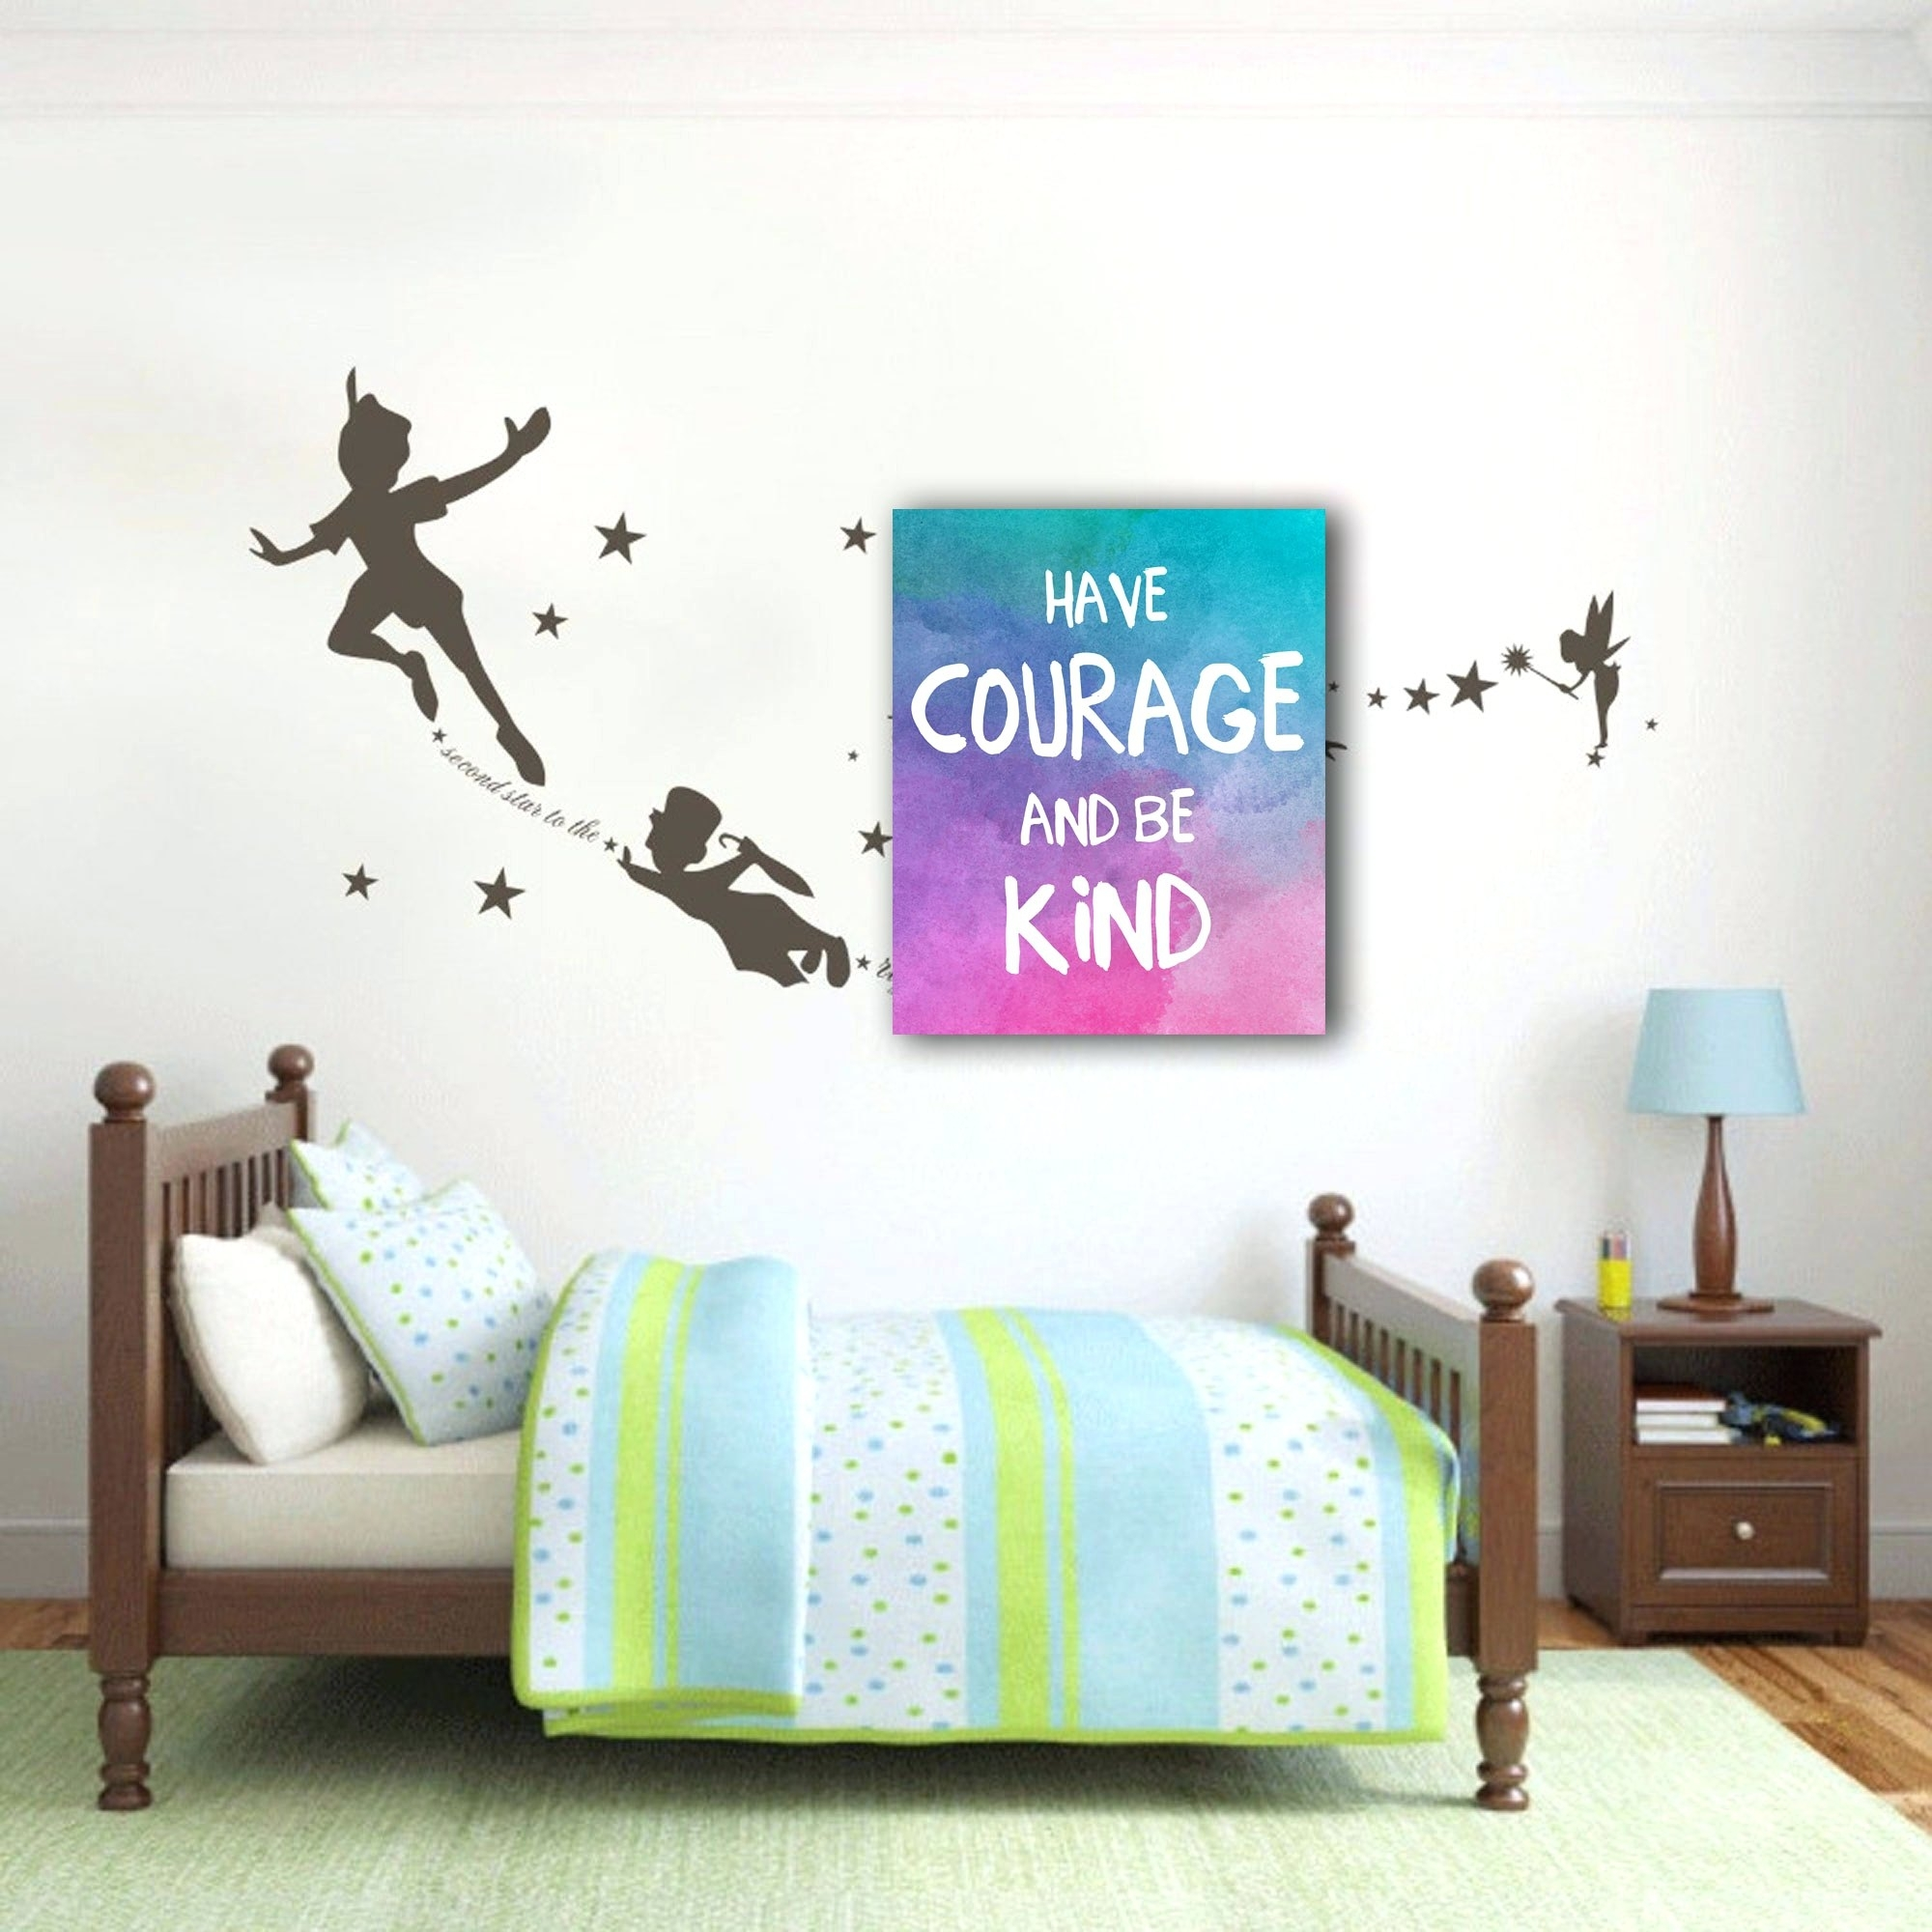 Wall Arts ~ Large Image For Splendid Wall Design Someday Inc With Regard To Latest Custom Nursery Canvas Wall Art (View 15 of 15)